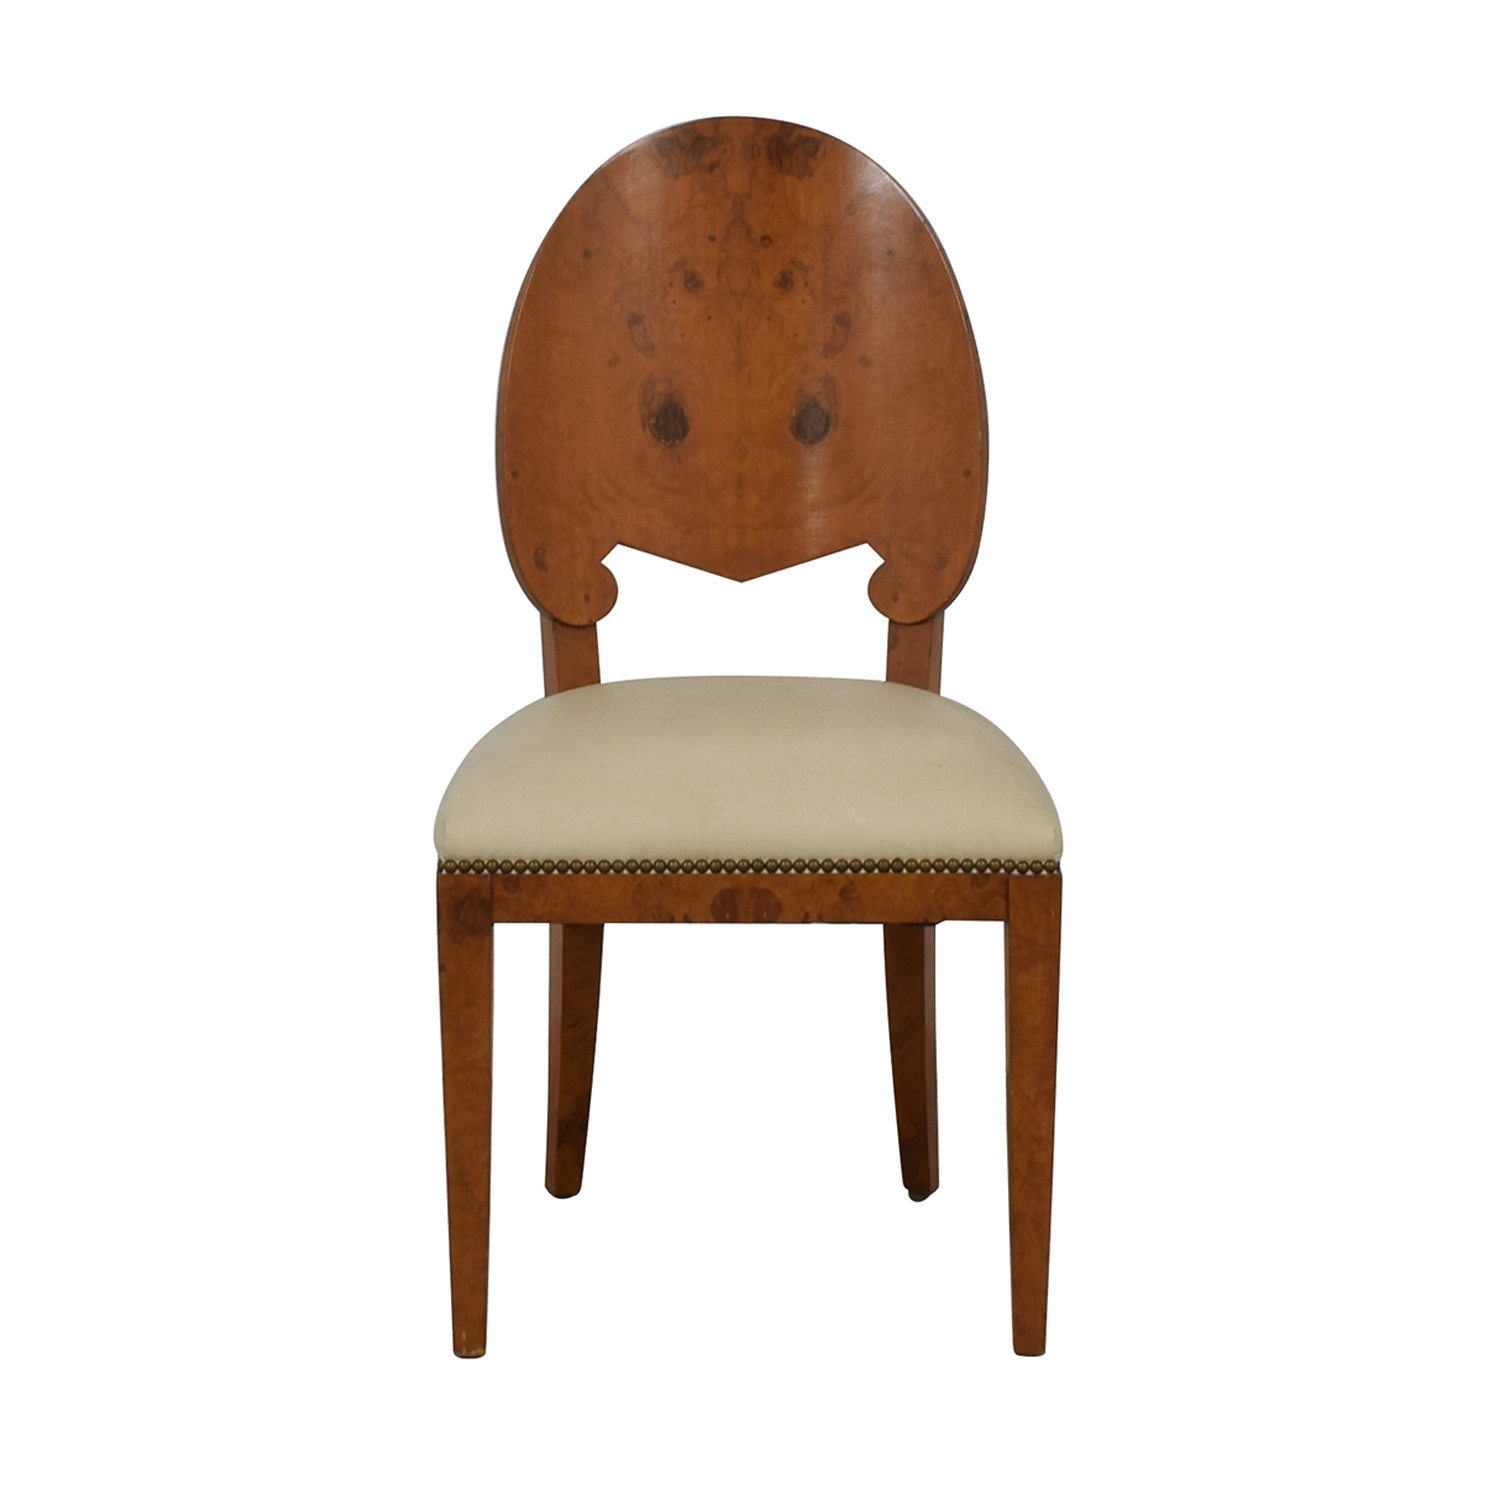 Furniture Masters Furniture Masters Nailhead Accent Chair price